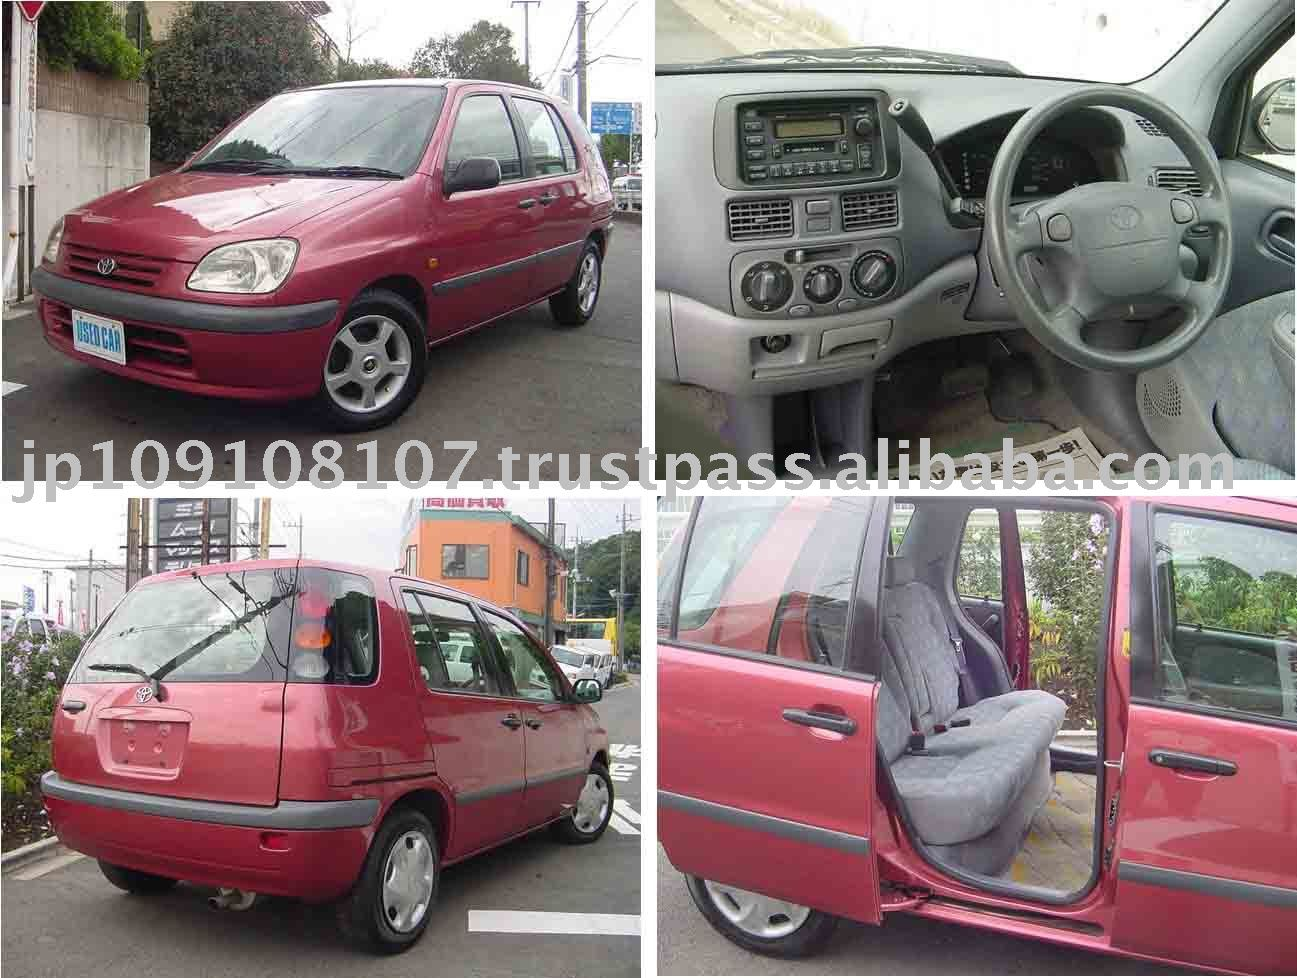 1997 Toyota Raum   pictures, information and specs - Auto-Database.com